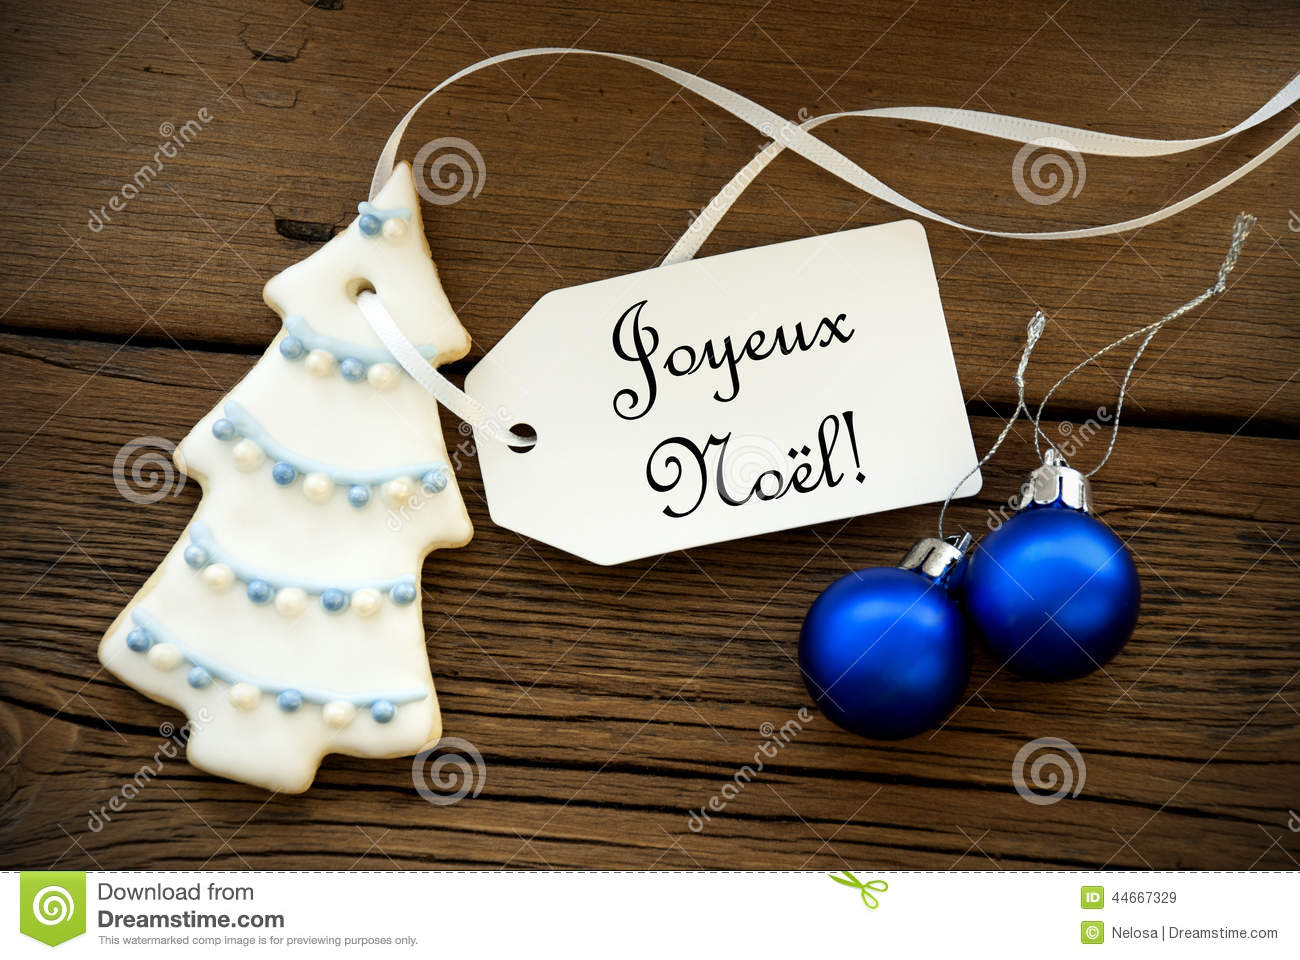 Christmas background with french christmas greetings stock image download christmas background with french christmas greetings stock image image of baked party m4hsunfo